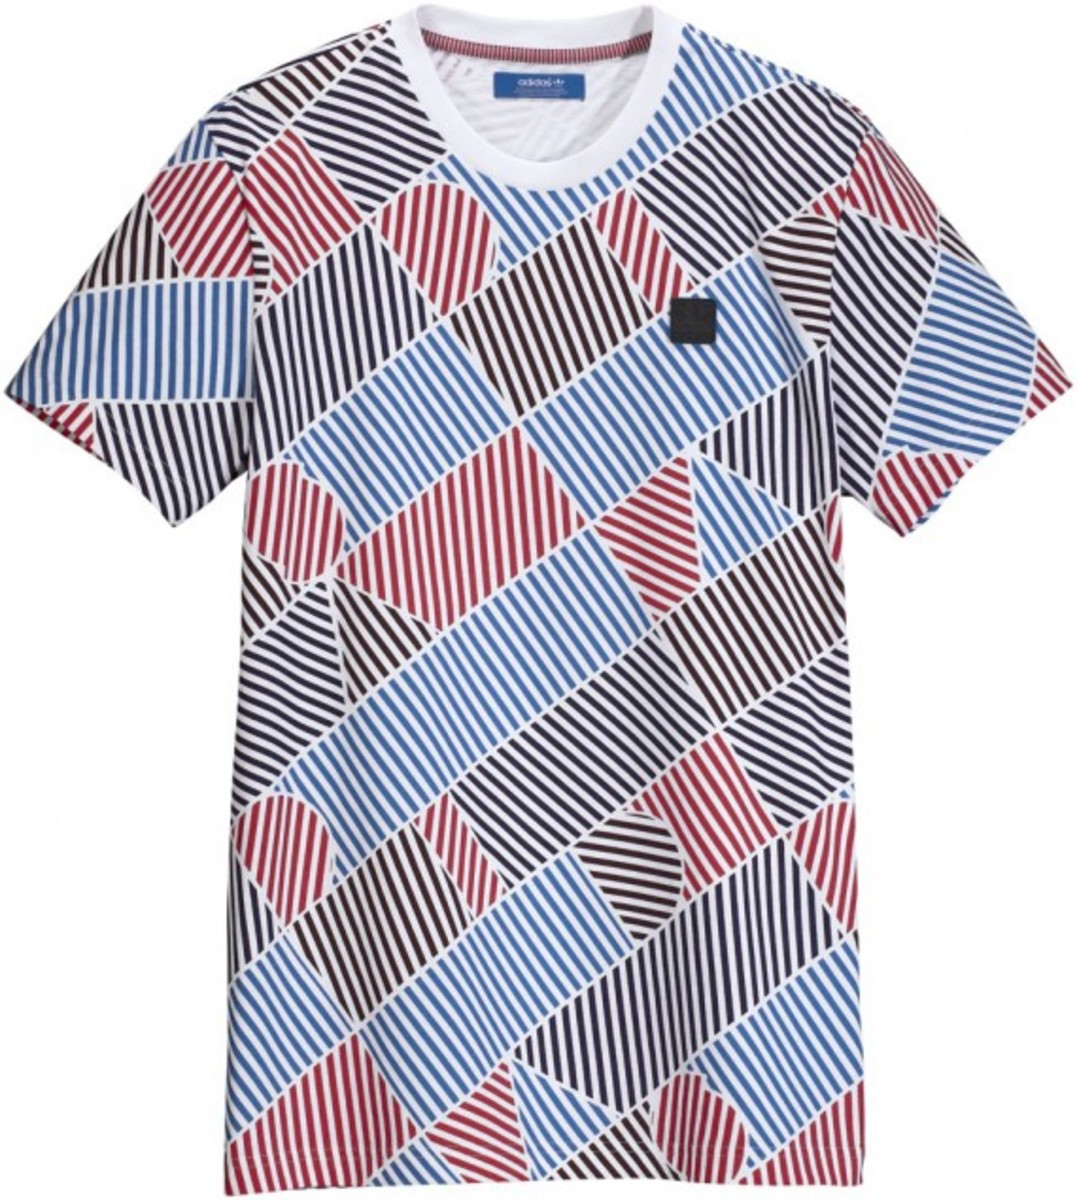 adidas-originals-st-collection-fall-2011-03